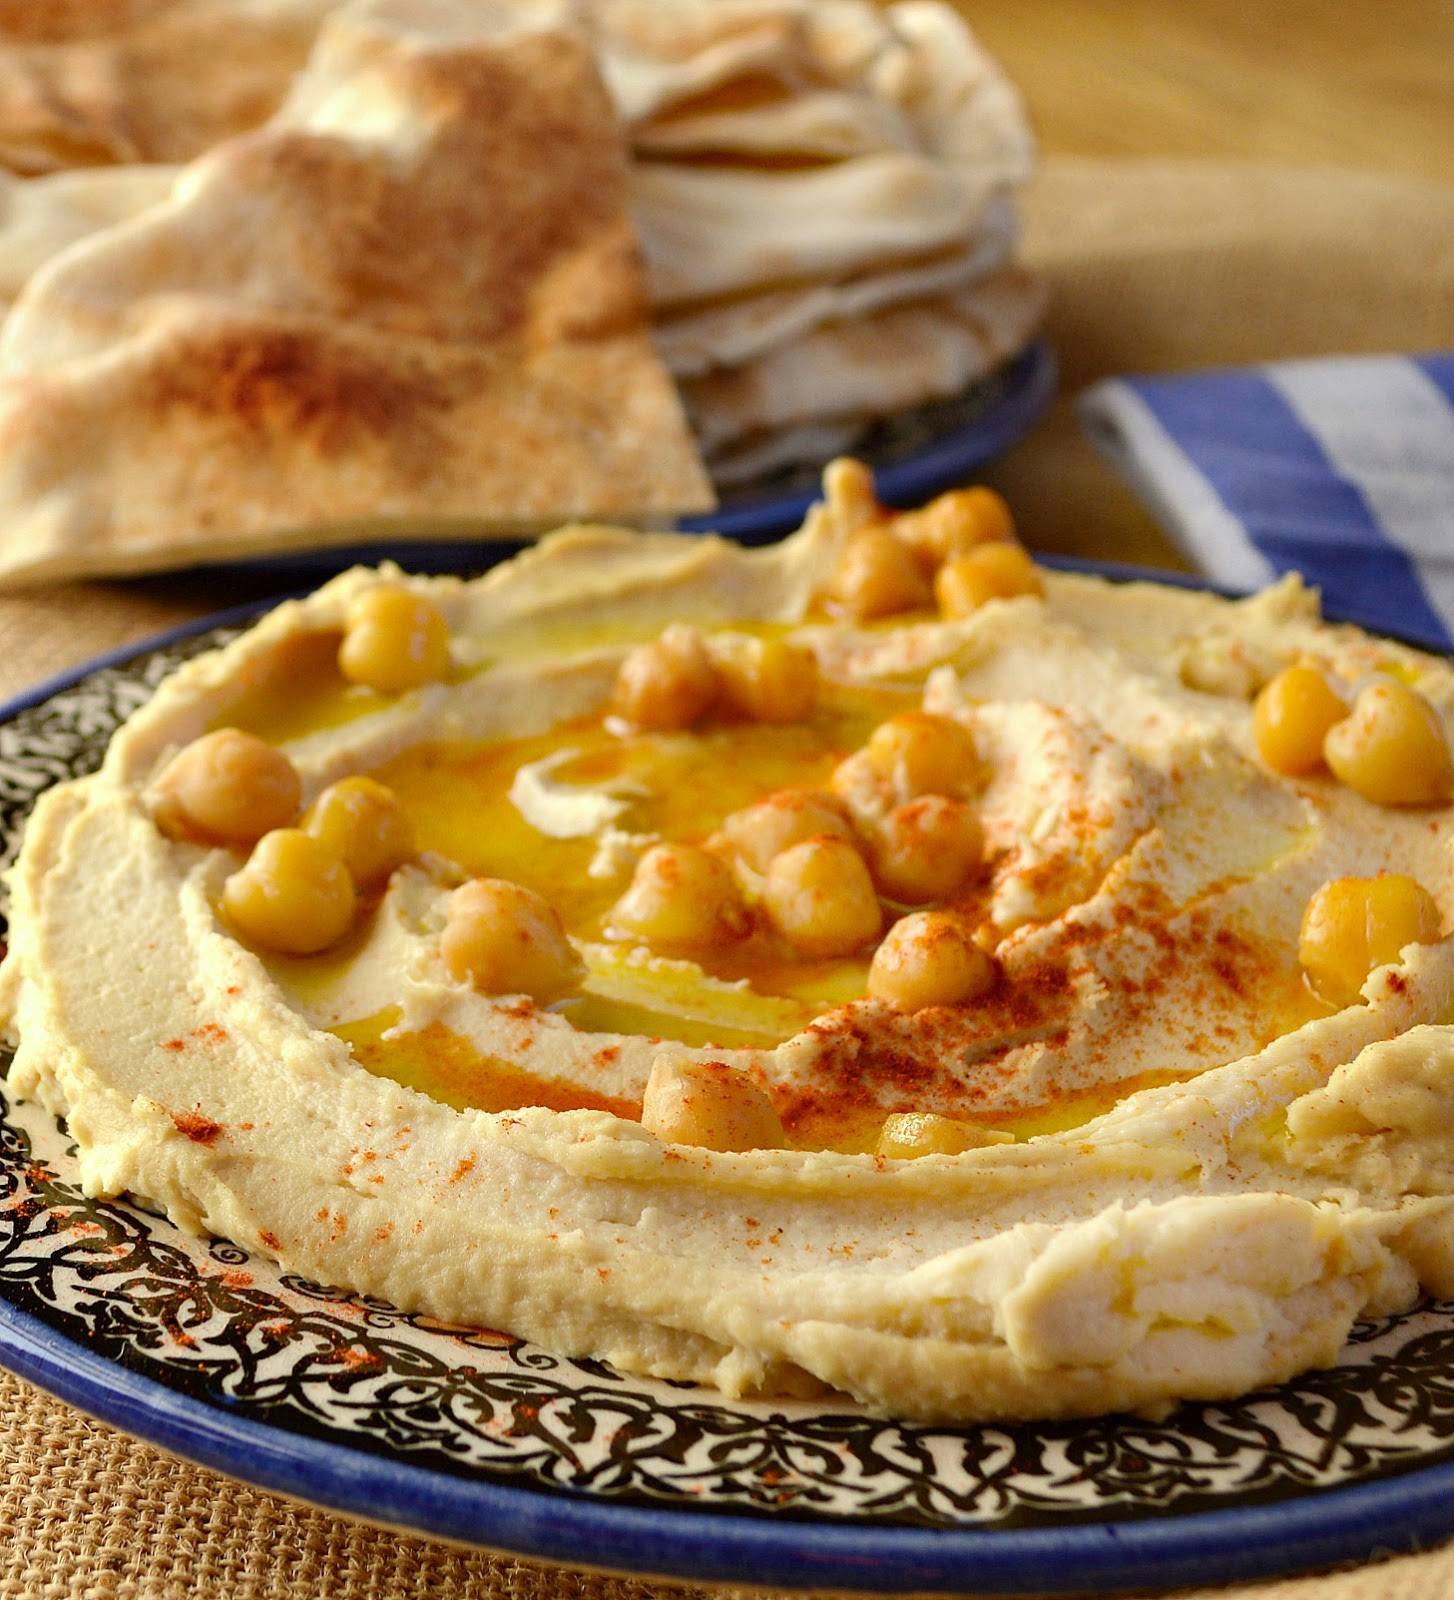 This is REAL HUMMUS. It is made from dried chickpeas. It is addictive and delicious. It converts hummus haters. It spreads like frosting and is silky smooth. It might even be better than frosting. www.thisishowicook.com #hummus #appetizer